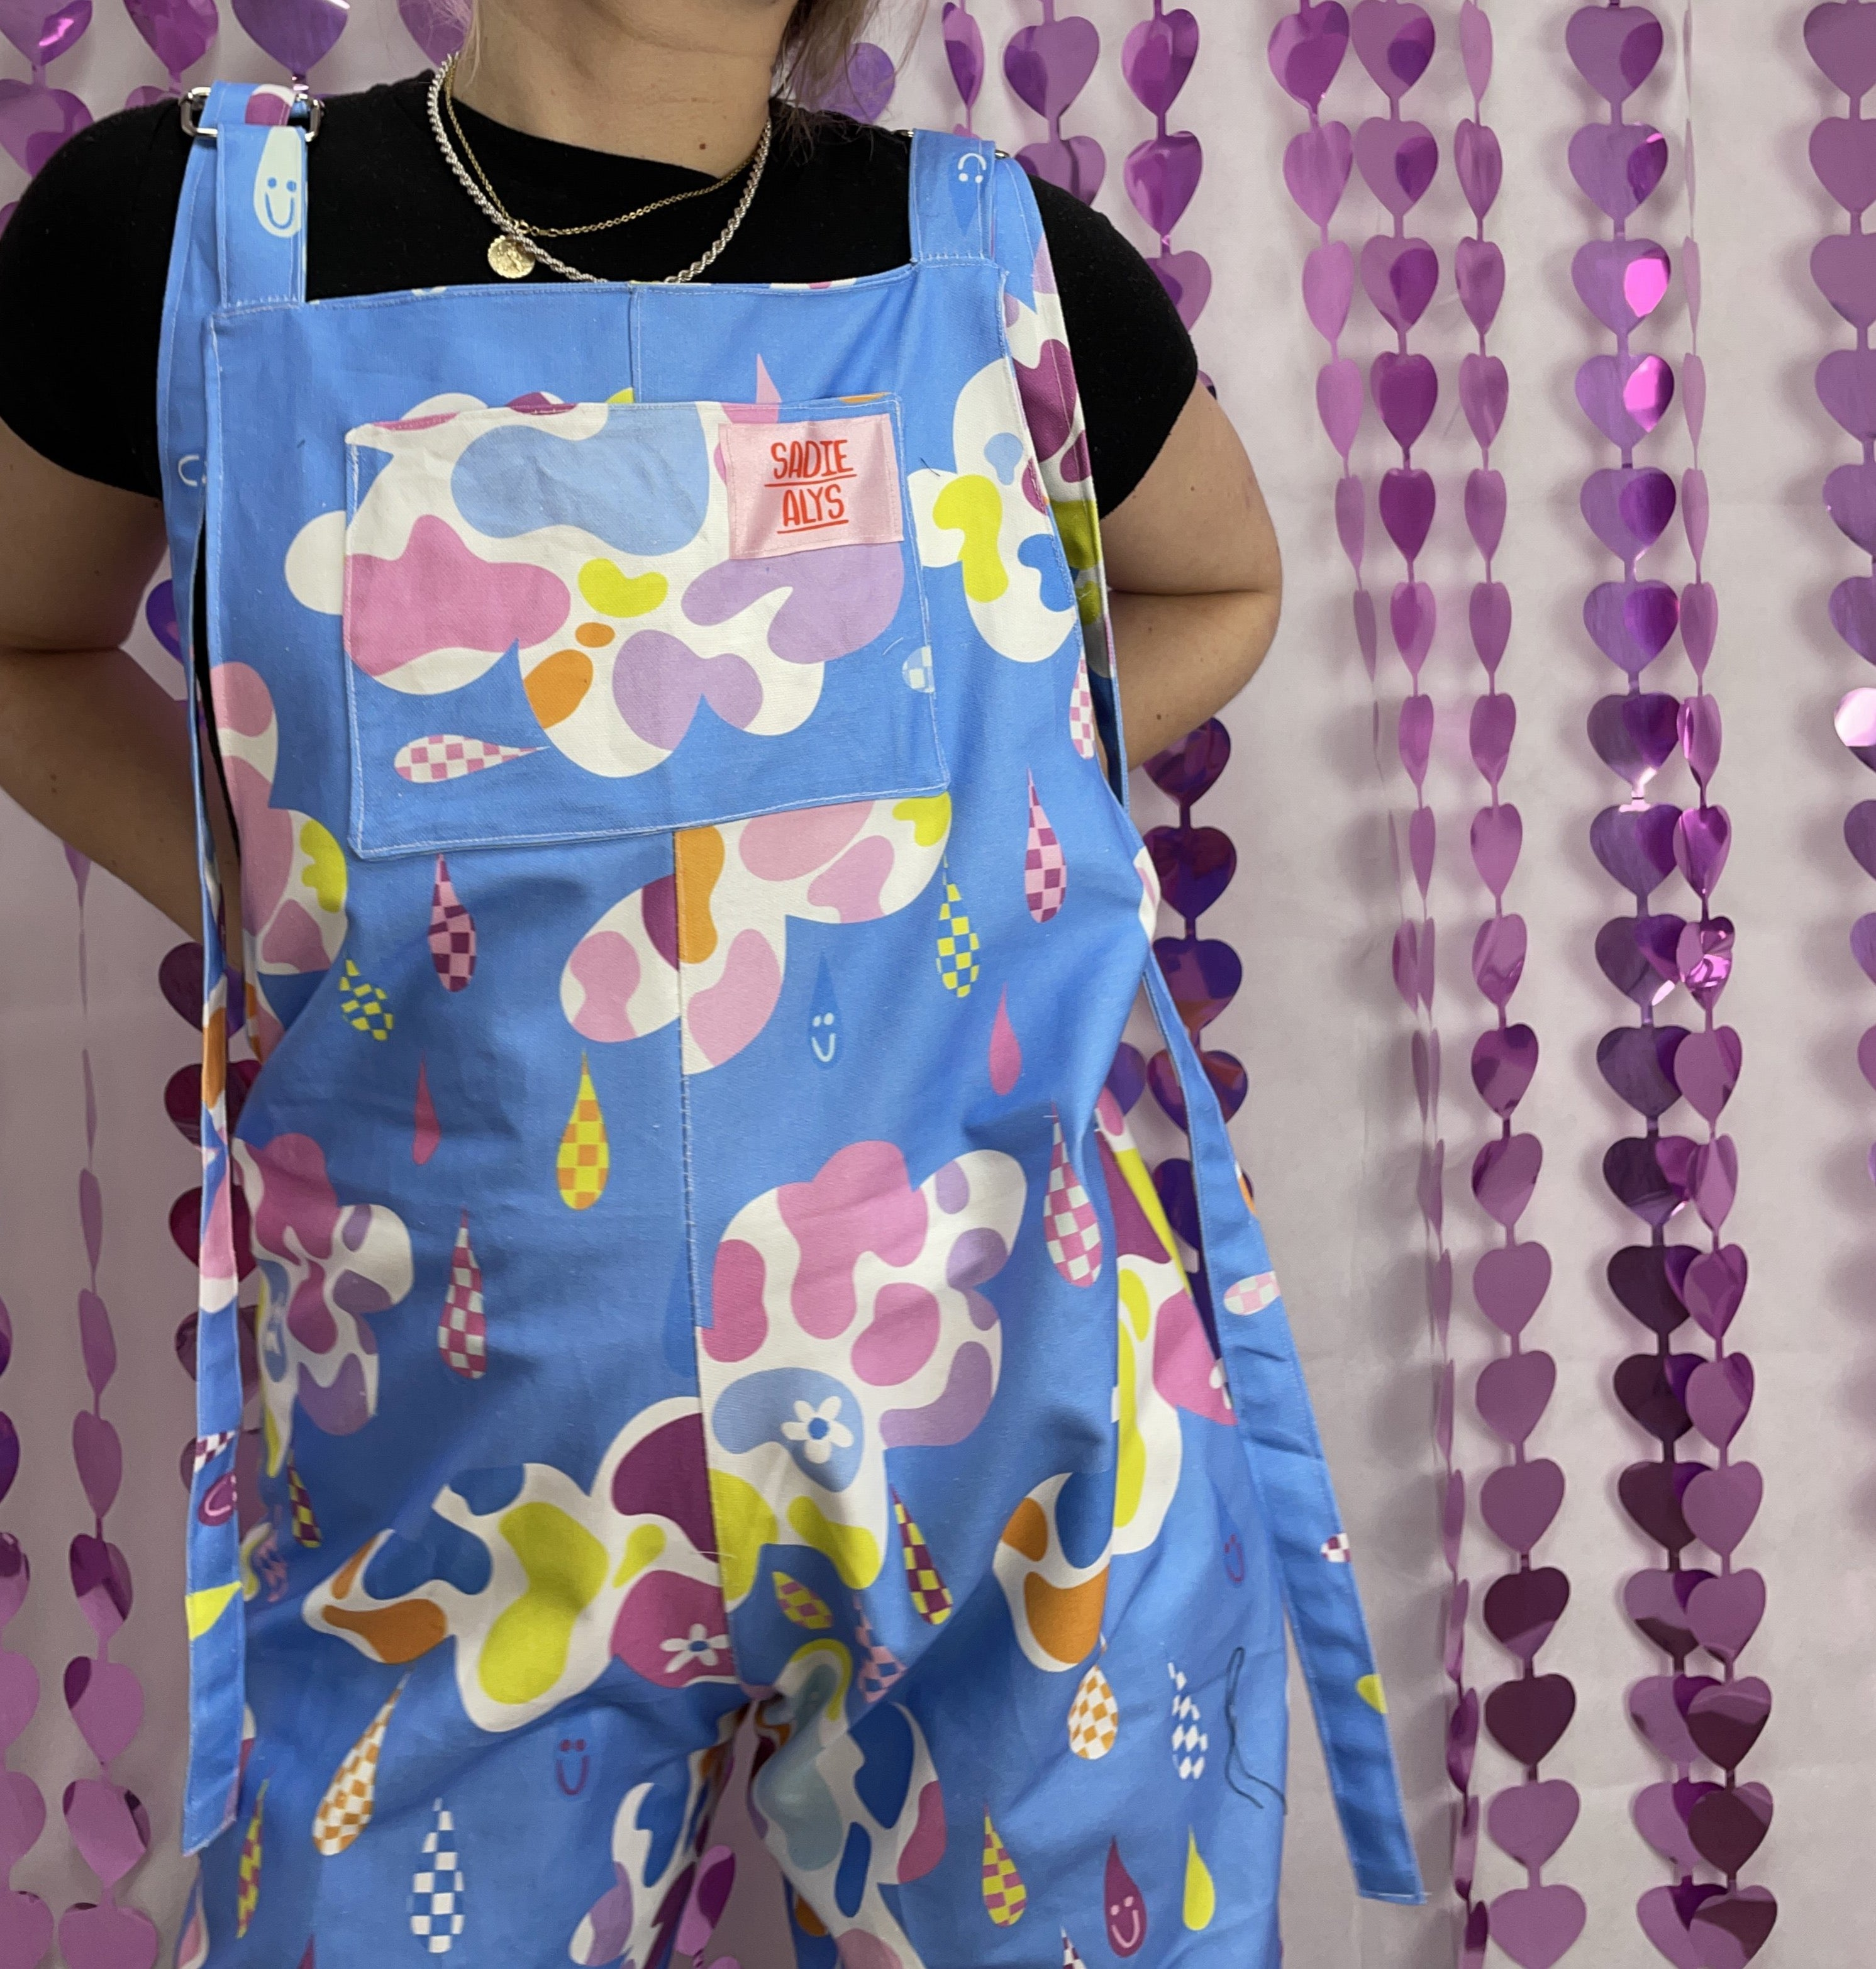 LIMITED EDITION Katie Peck X Sadie Alys Dungarees